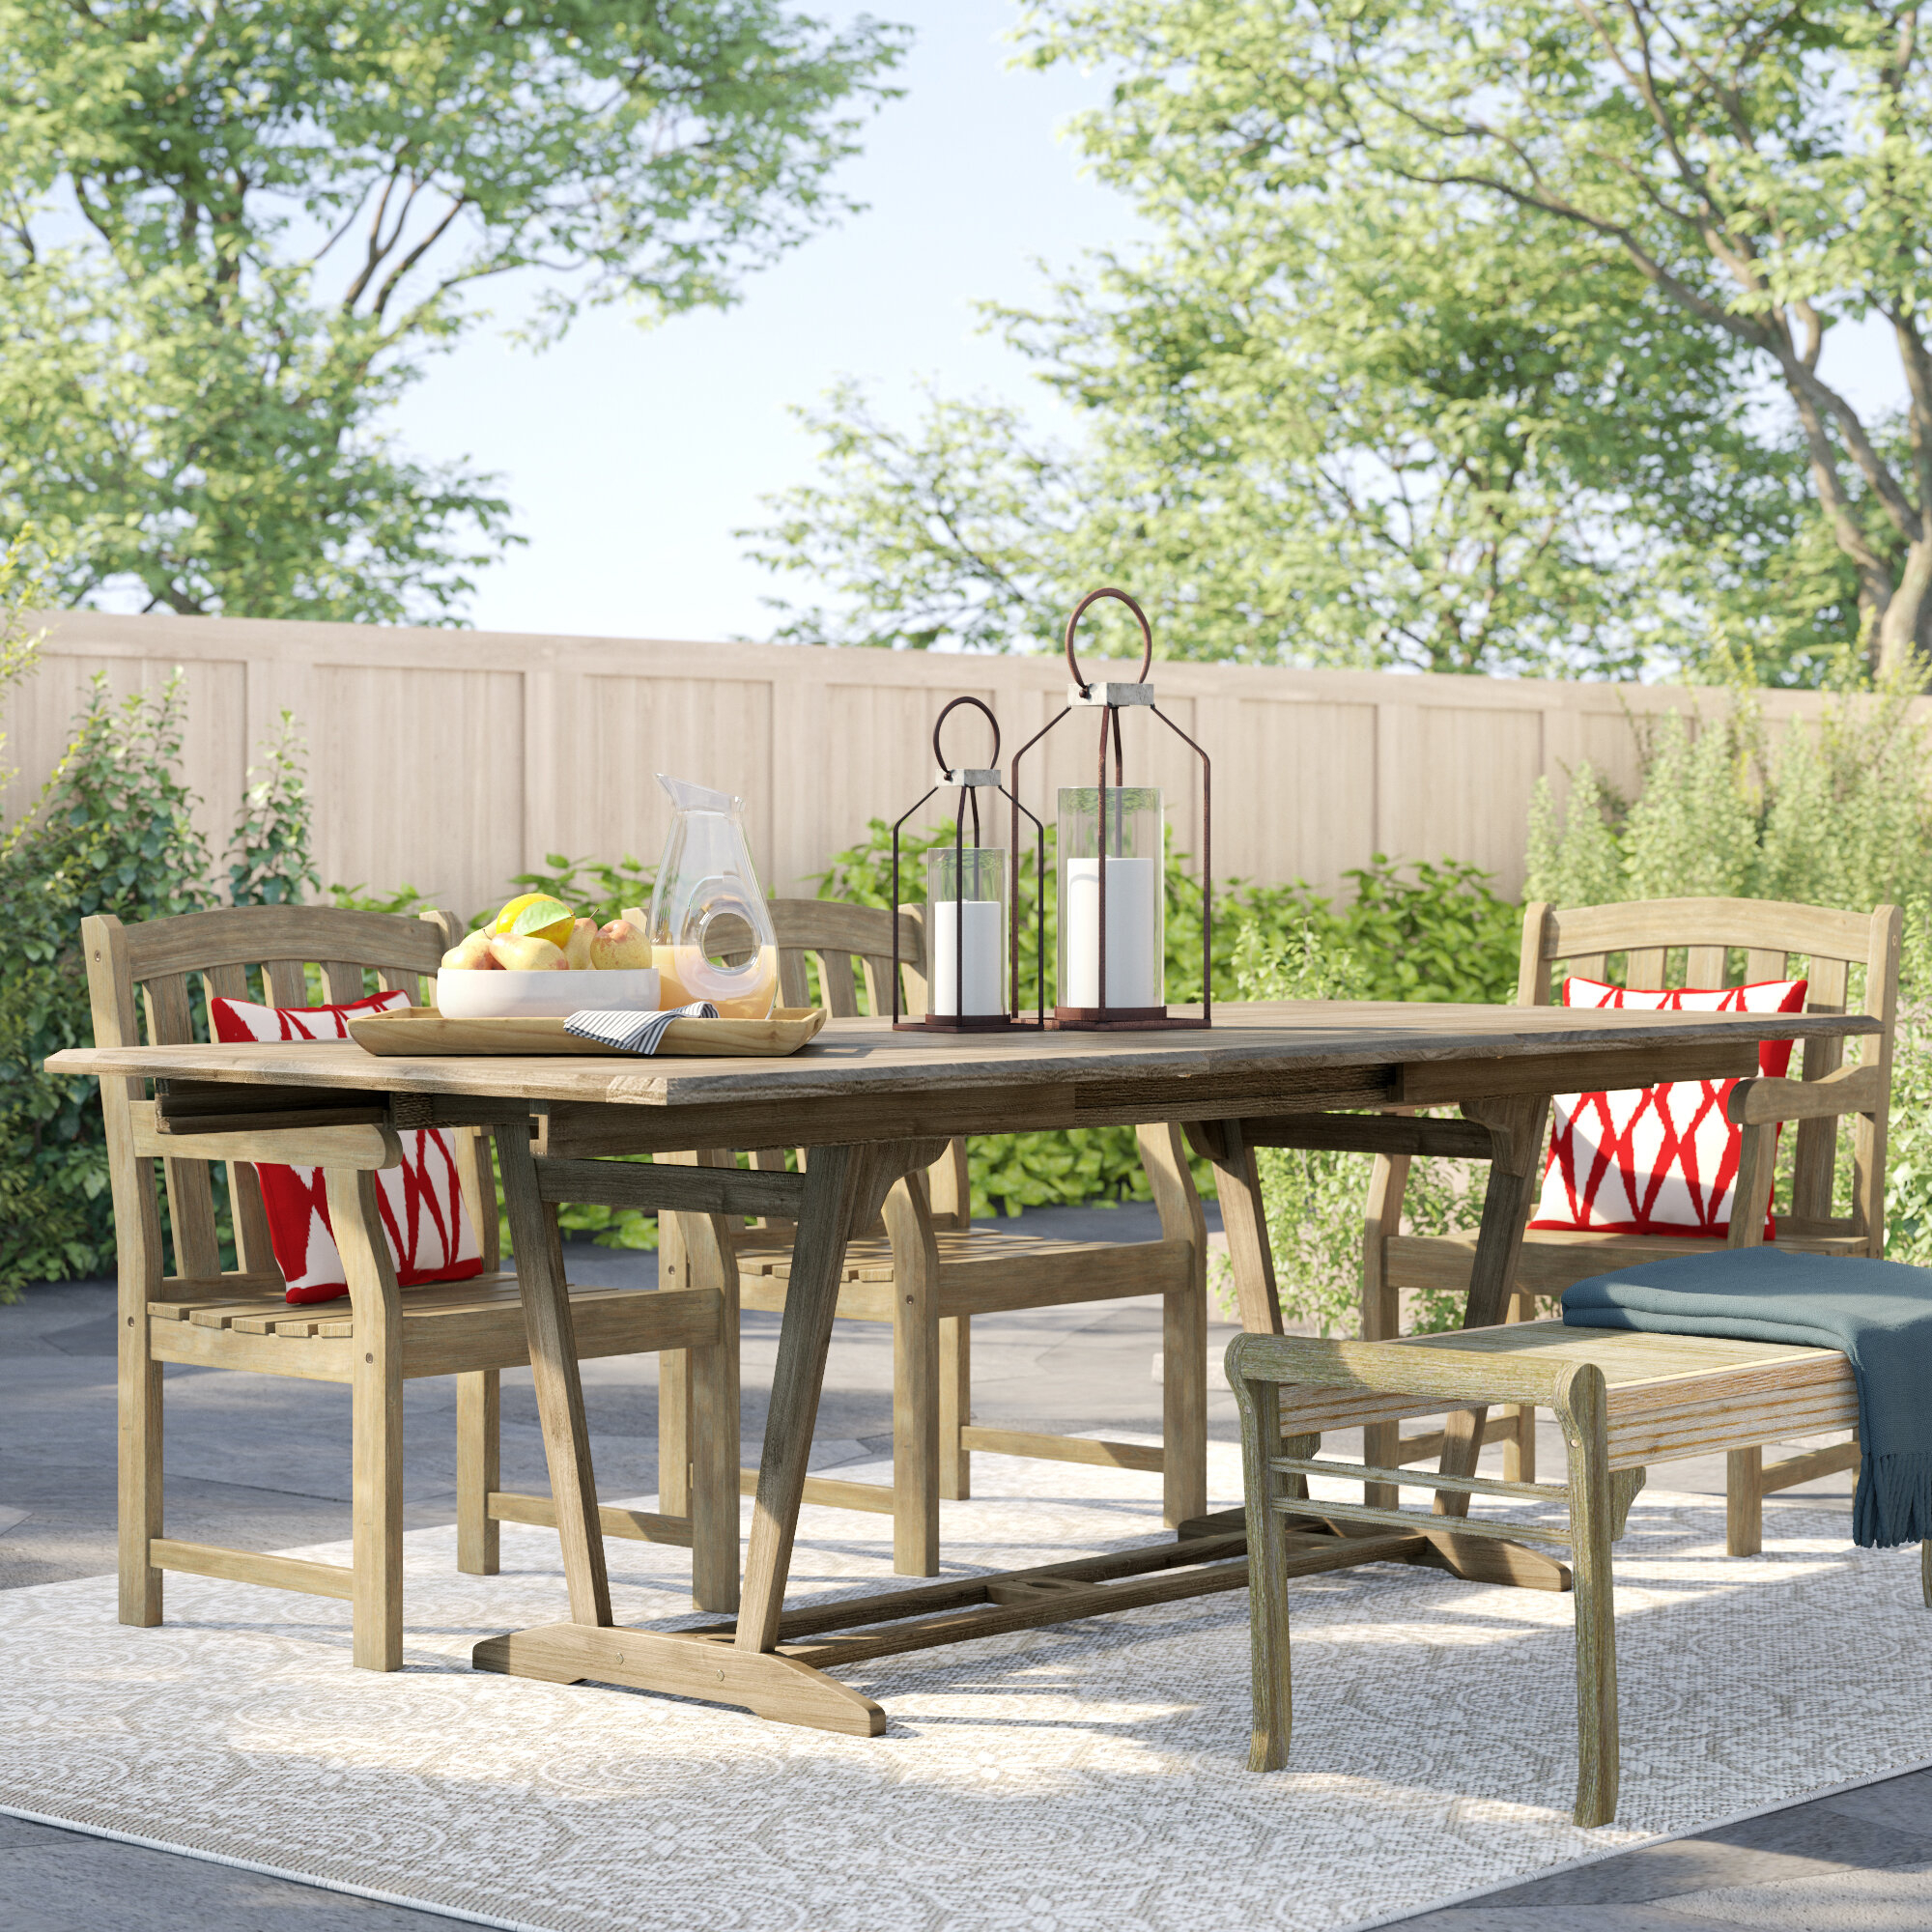 Shelbie Extendable Wooden Dining Table Pertaining To Shelbie Wooden Garden Benches (View 15 of 25)